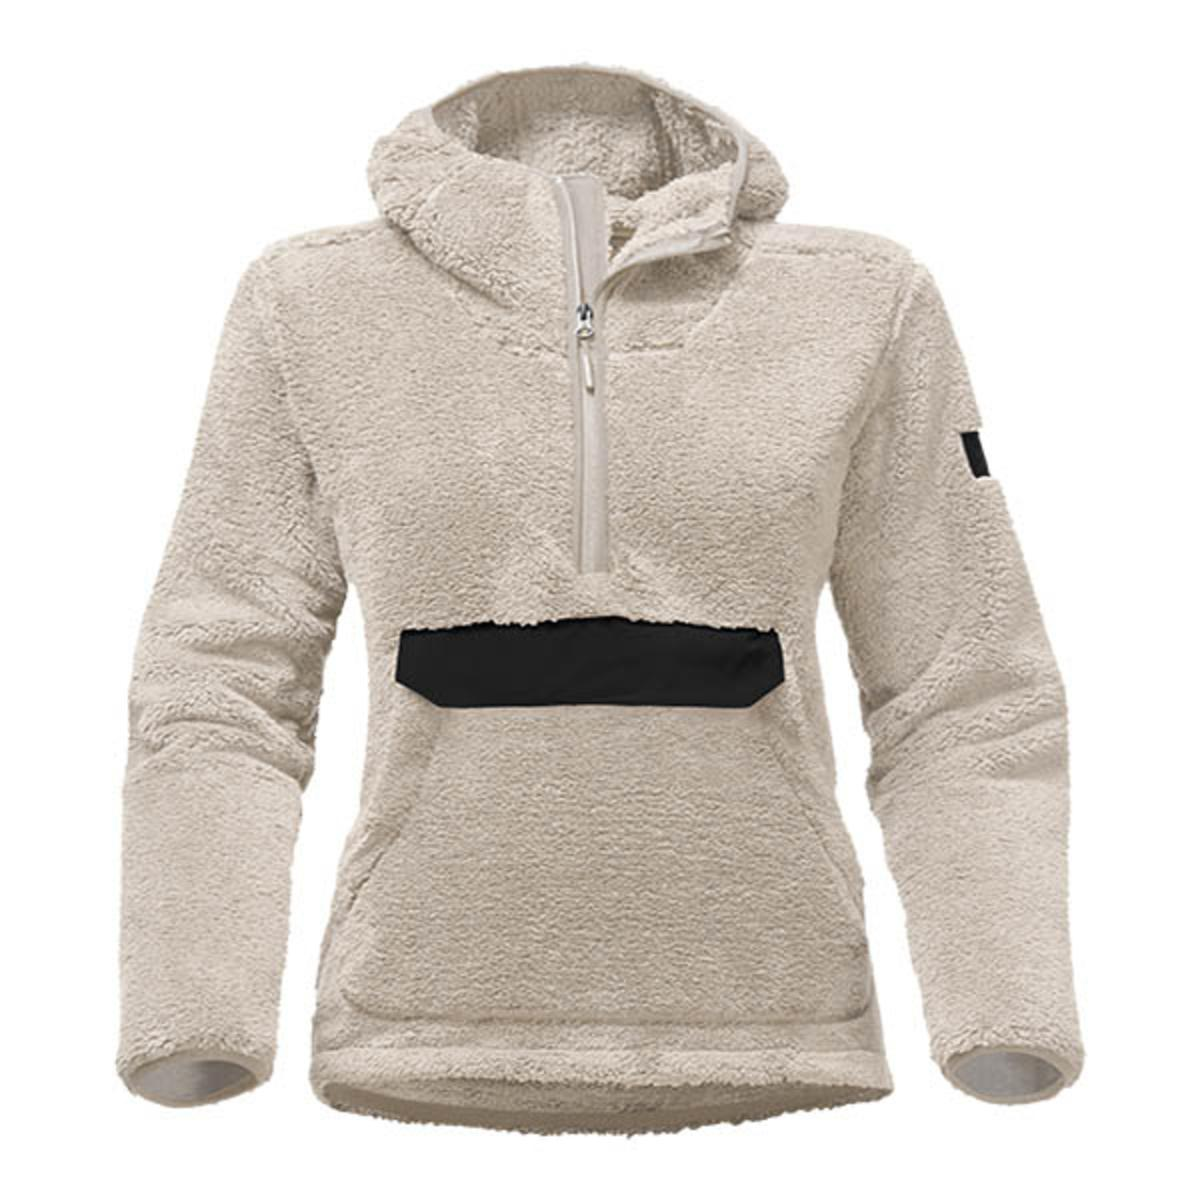 88ae0c71e The North Face Women's Campshire Pull-Over Hoodie - The Warming Store